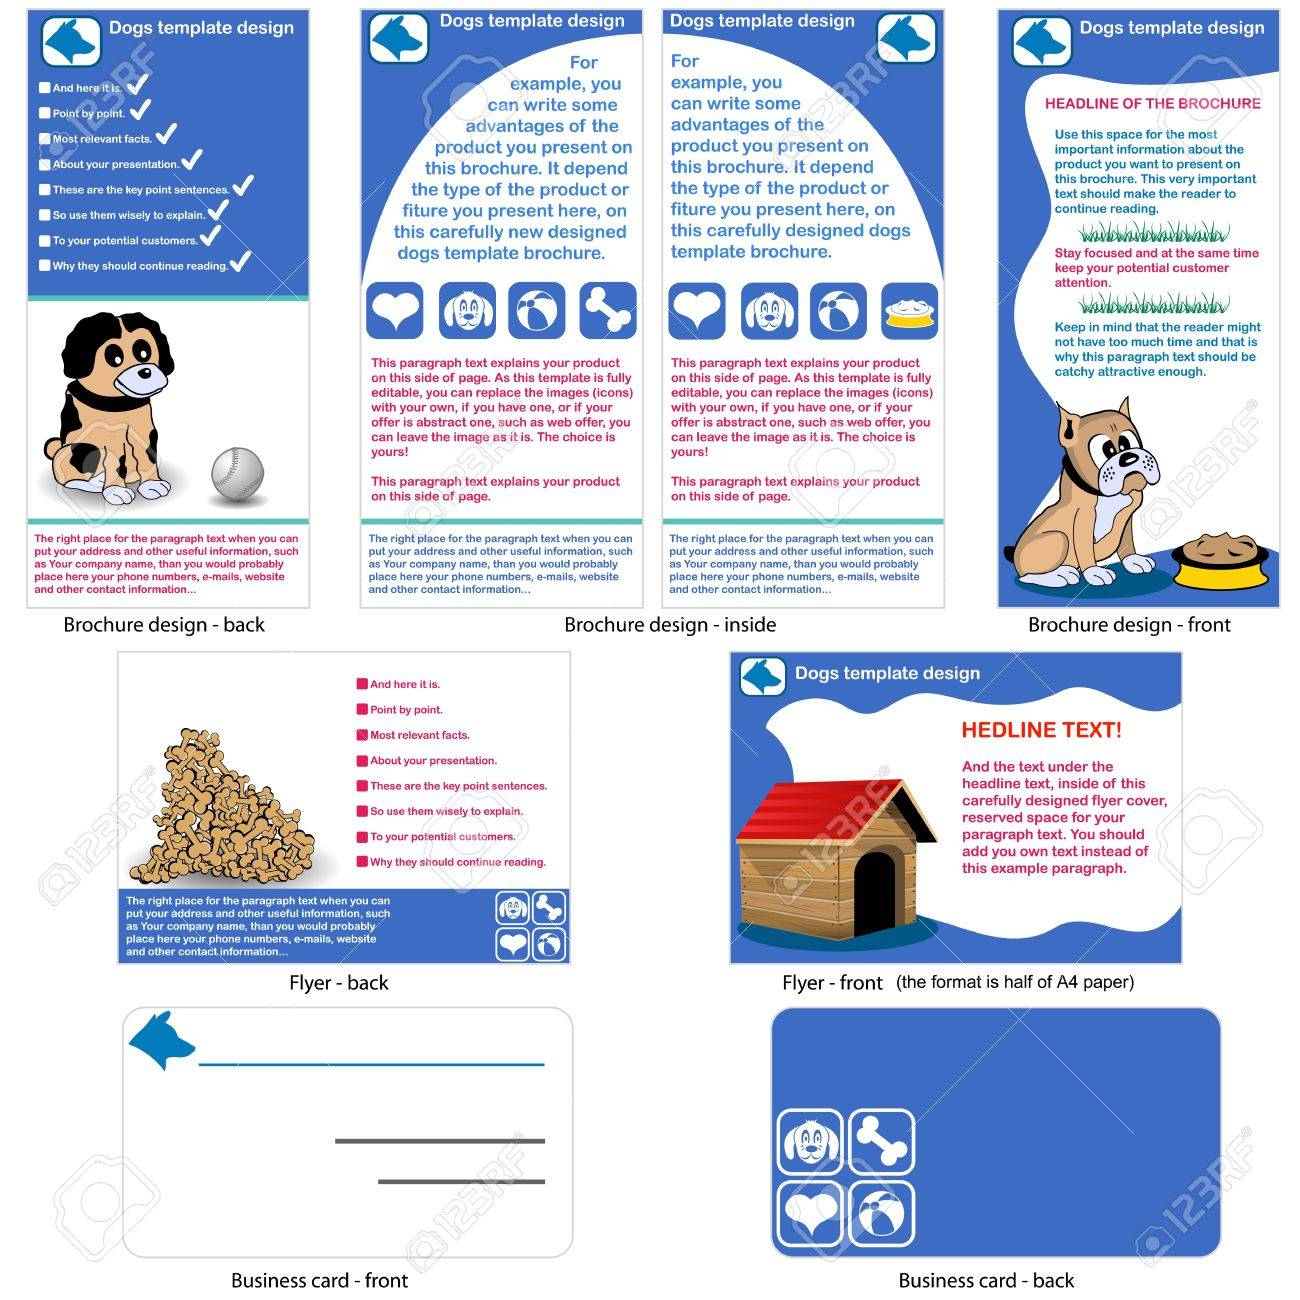 dogs template design brochure design flyer design and business vector dogs template design brochure design flyer design and business card design in one package and fully editable